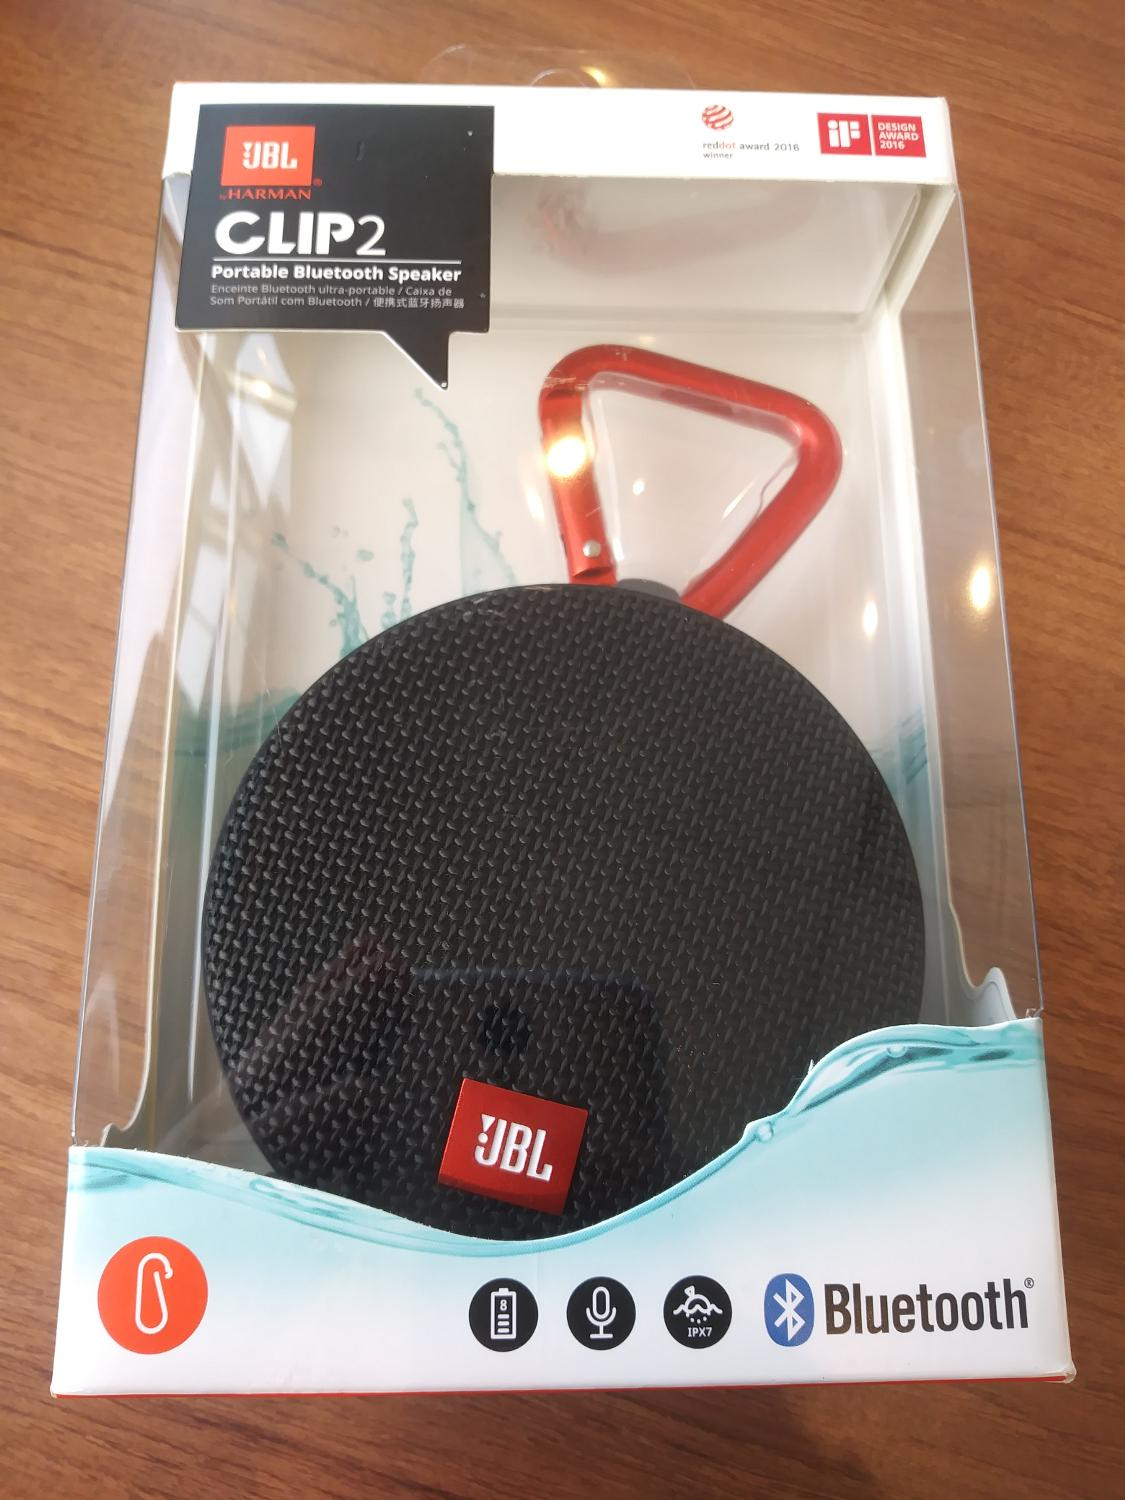 Best Jbl Clip 2 Portable Bluetooth Speaker for sale in Temecula, California for 2019